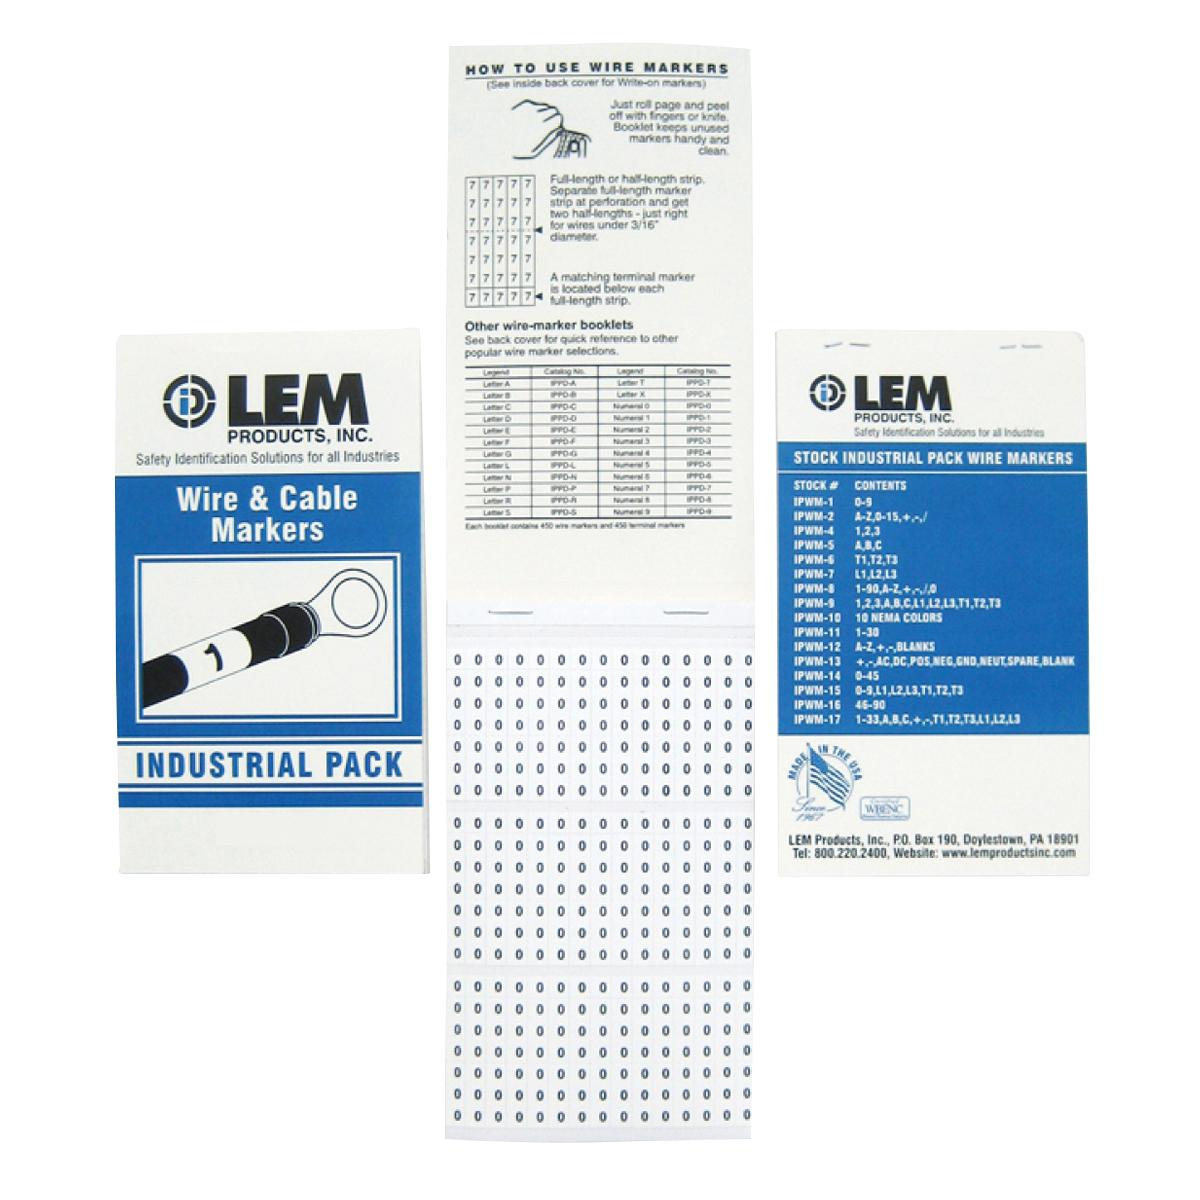 hight resolution of lem ipwm14 vinyl cloth industrial standard wire and cable marker book 1 4 inch x 1 1 2 inch black on white legend 1 45 0 industrial pack wire markers